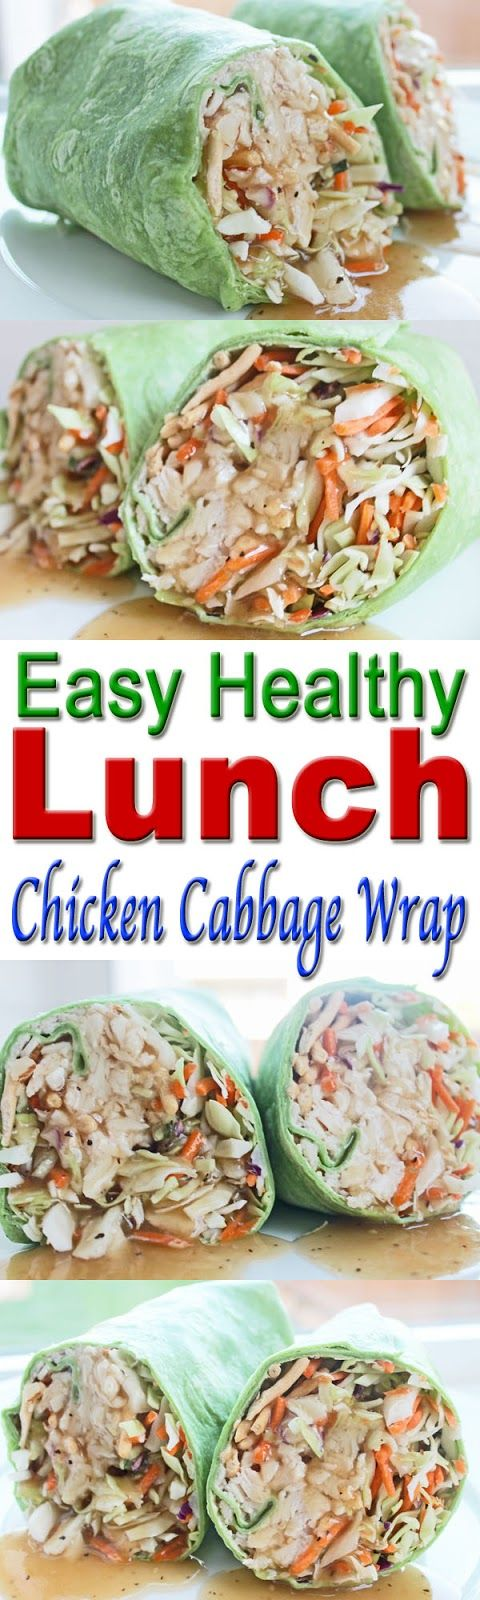 """Preview """"Healthy Lunch Recipe: Chicken and Cabbage Wrap"""" 